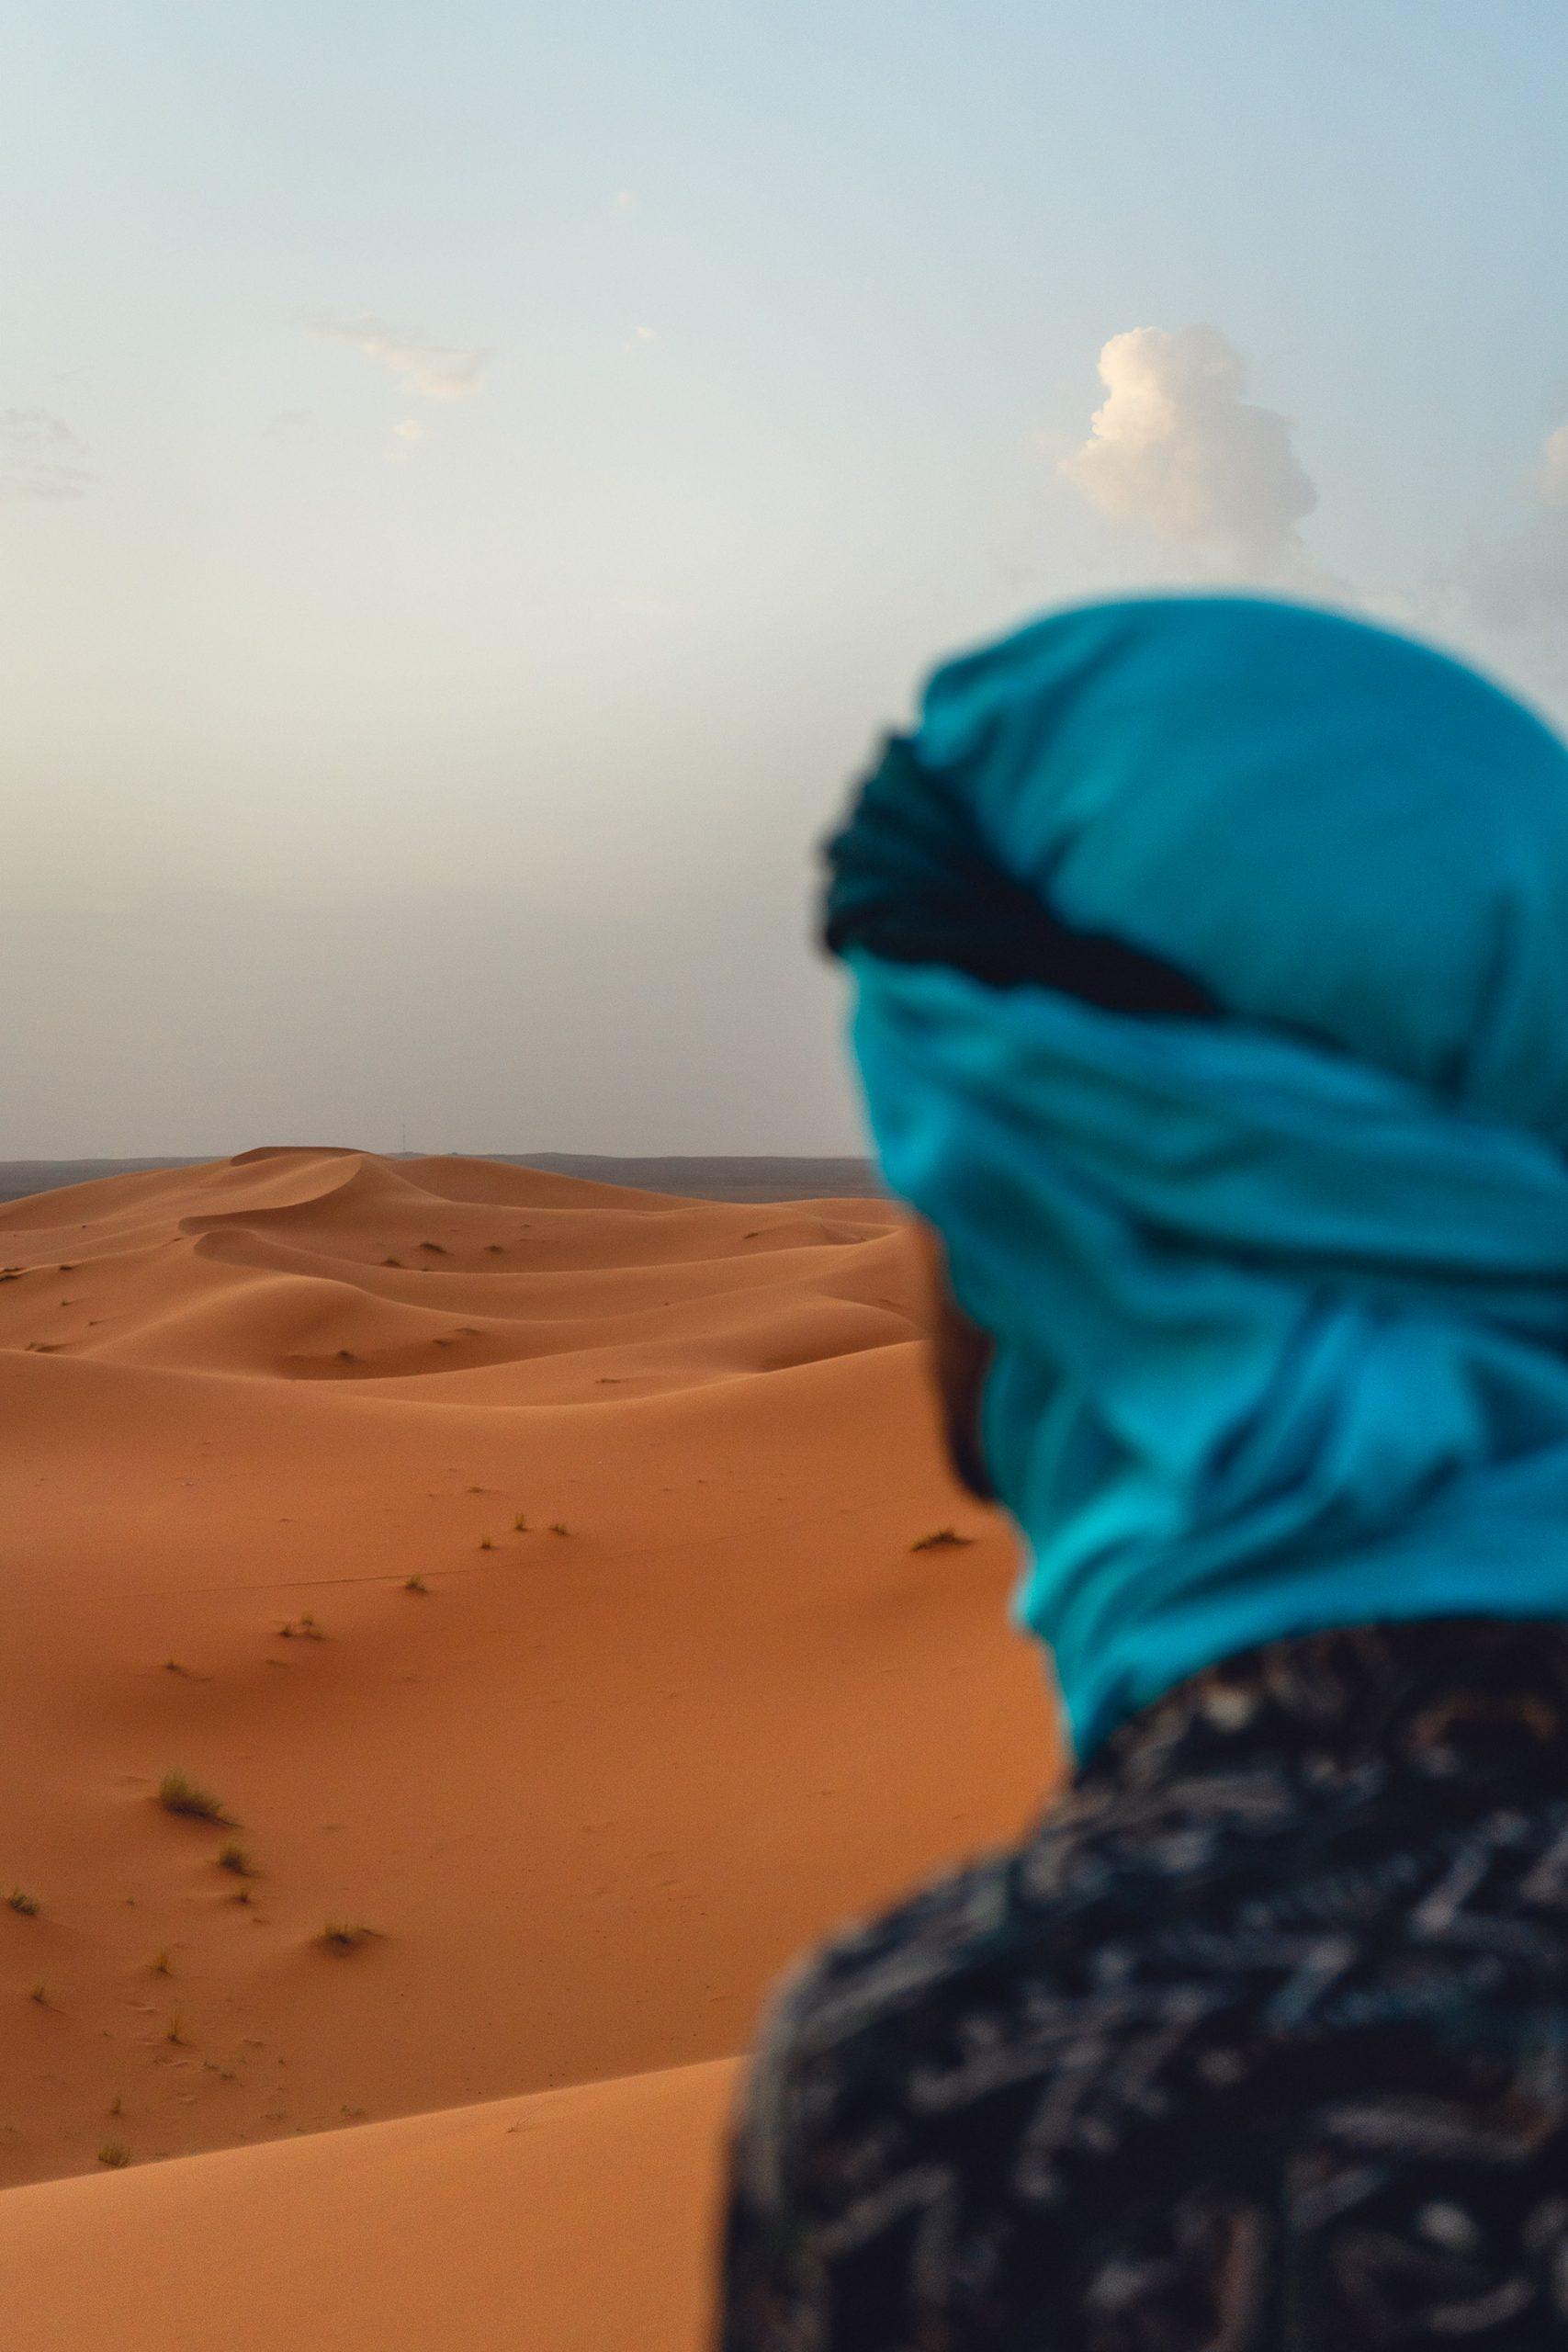 Rui taking in the views at the Egg Chebbi sand dunes in the Moroccan desert